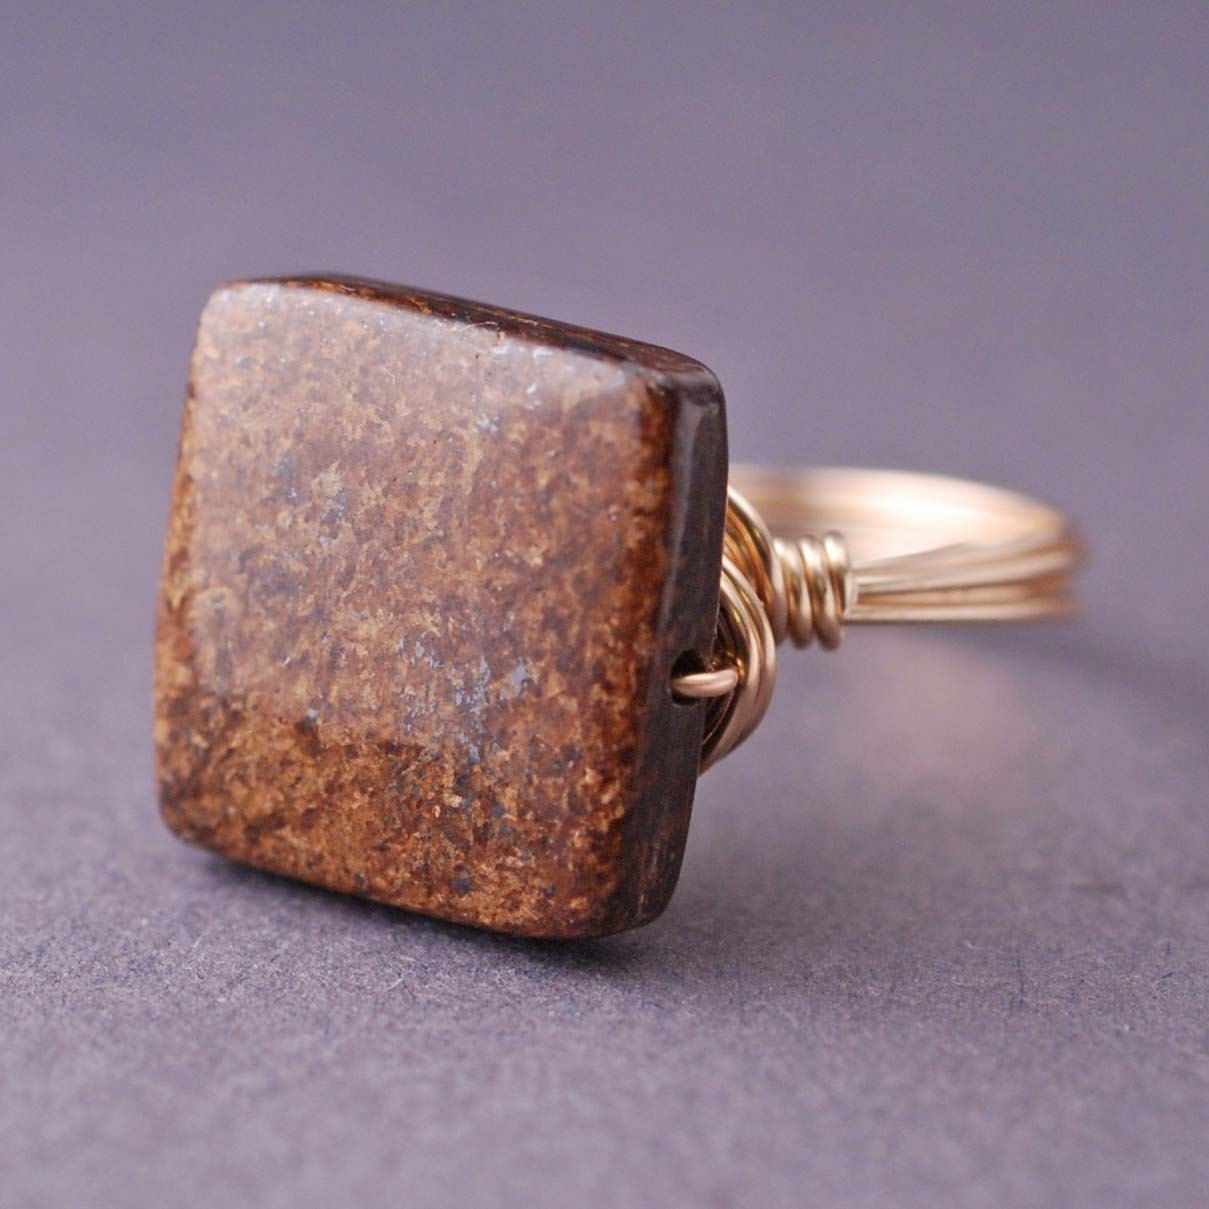 Gold Ring, Bronzite Ring, Brown Square Ring, Wire Wrapped Fashion Cocktail Ring. $32.00, via Etsy.